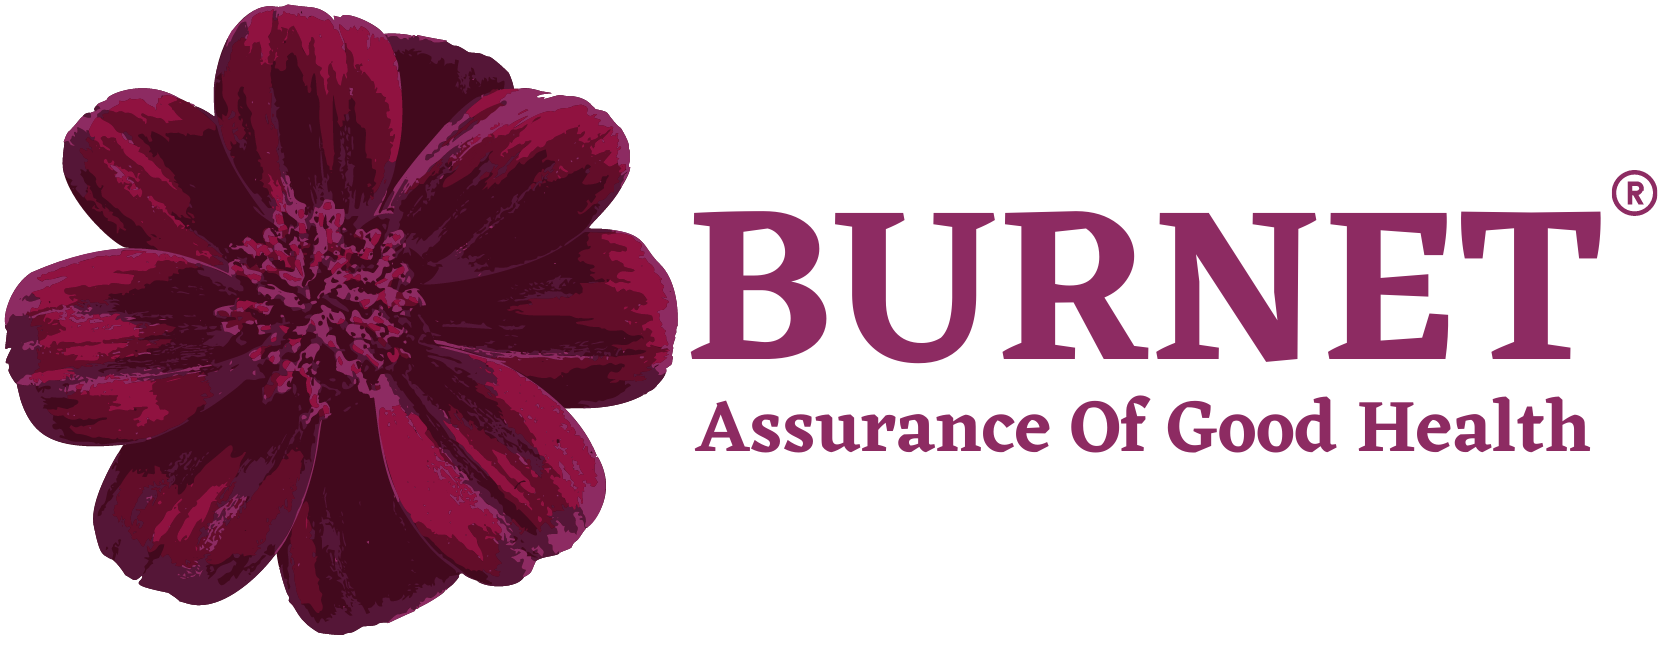 Burnet pharmaceuticals